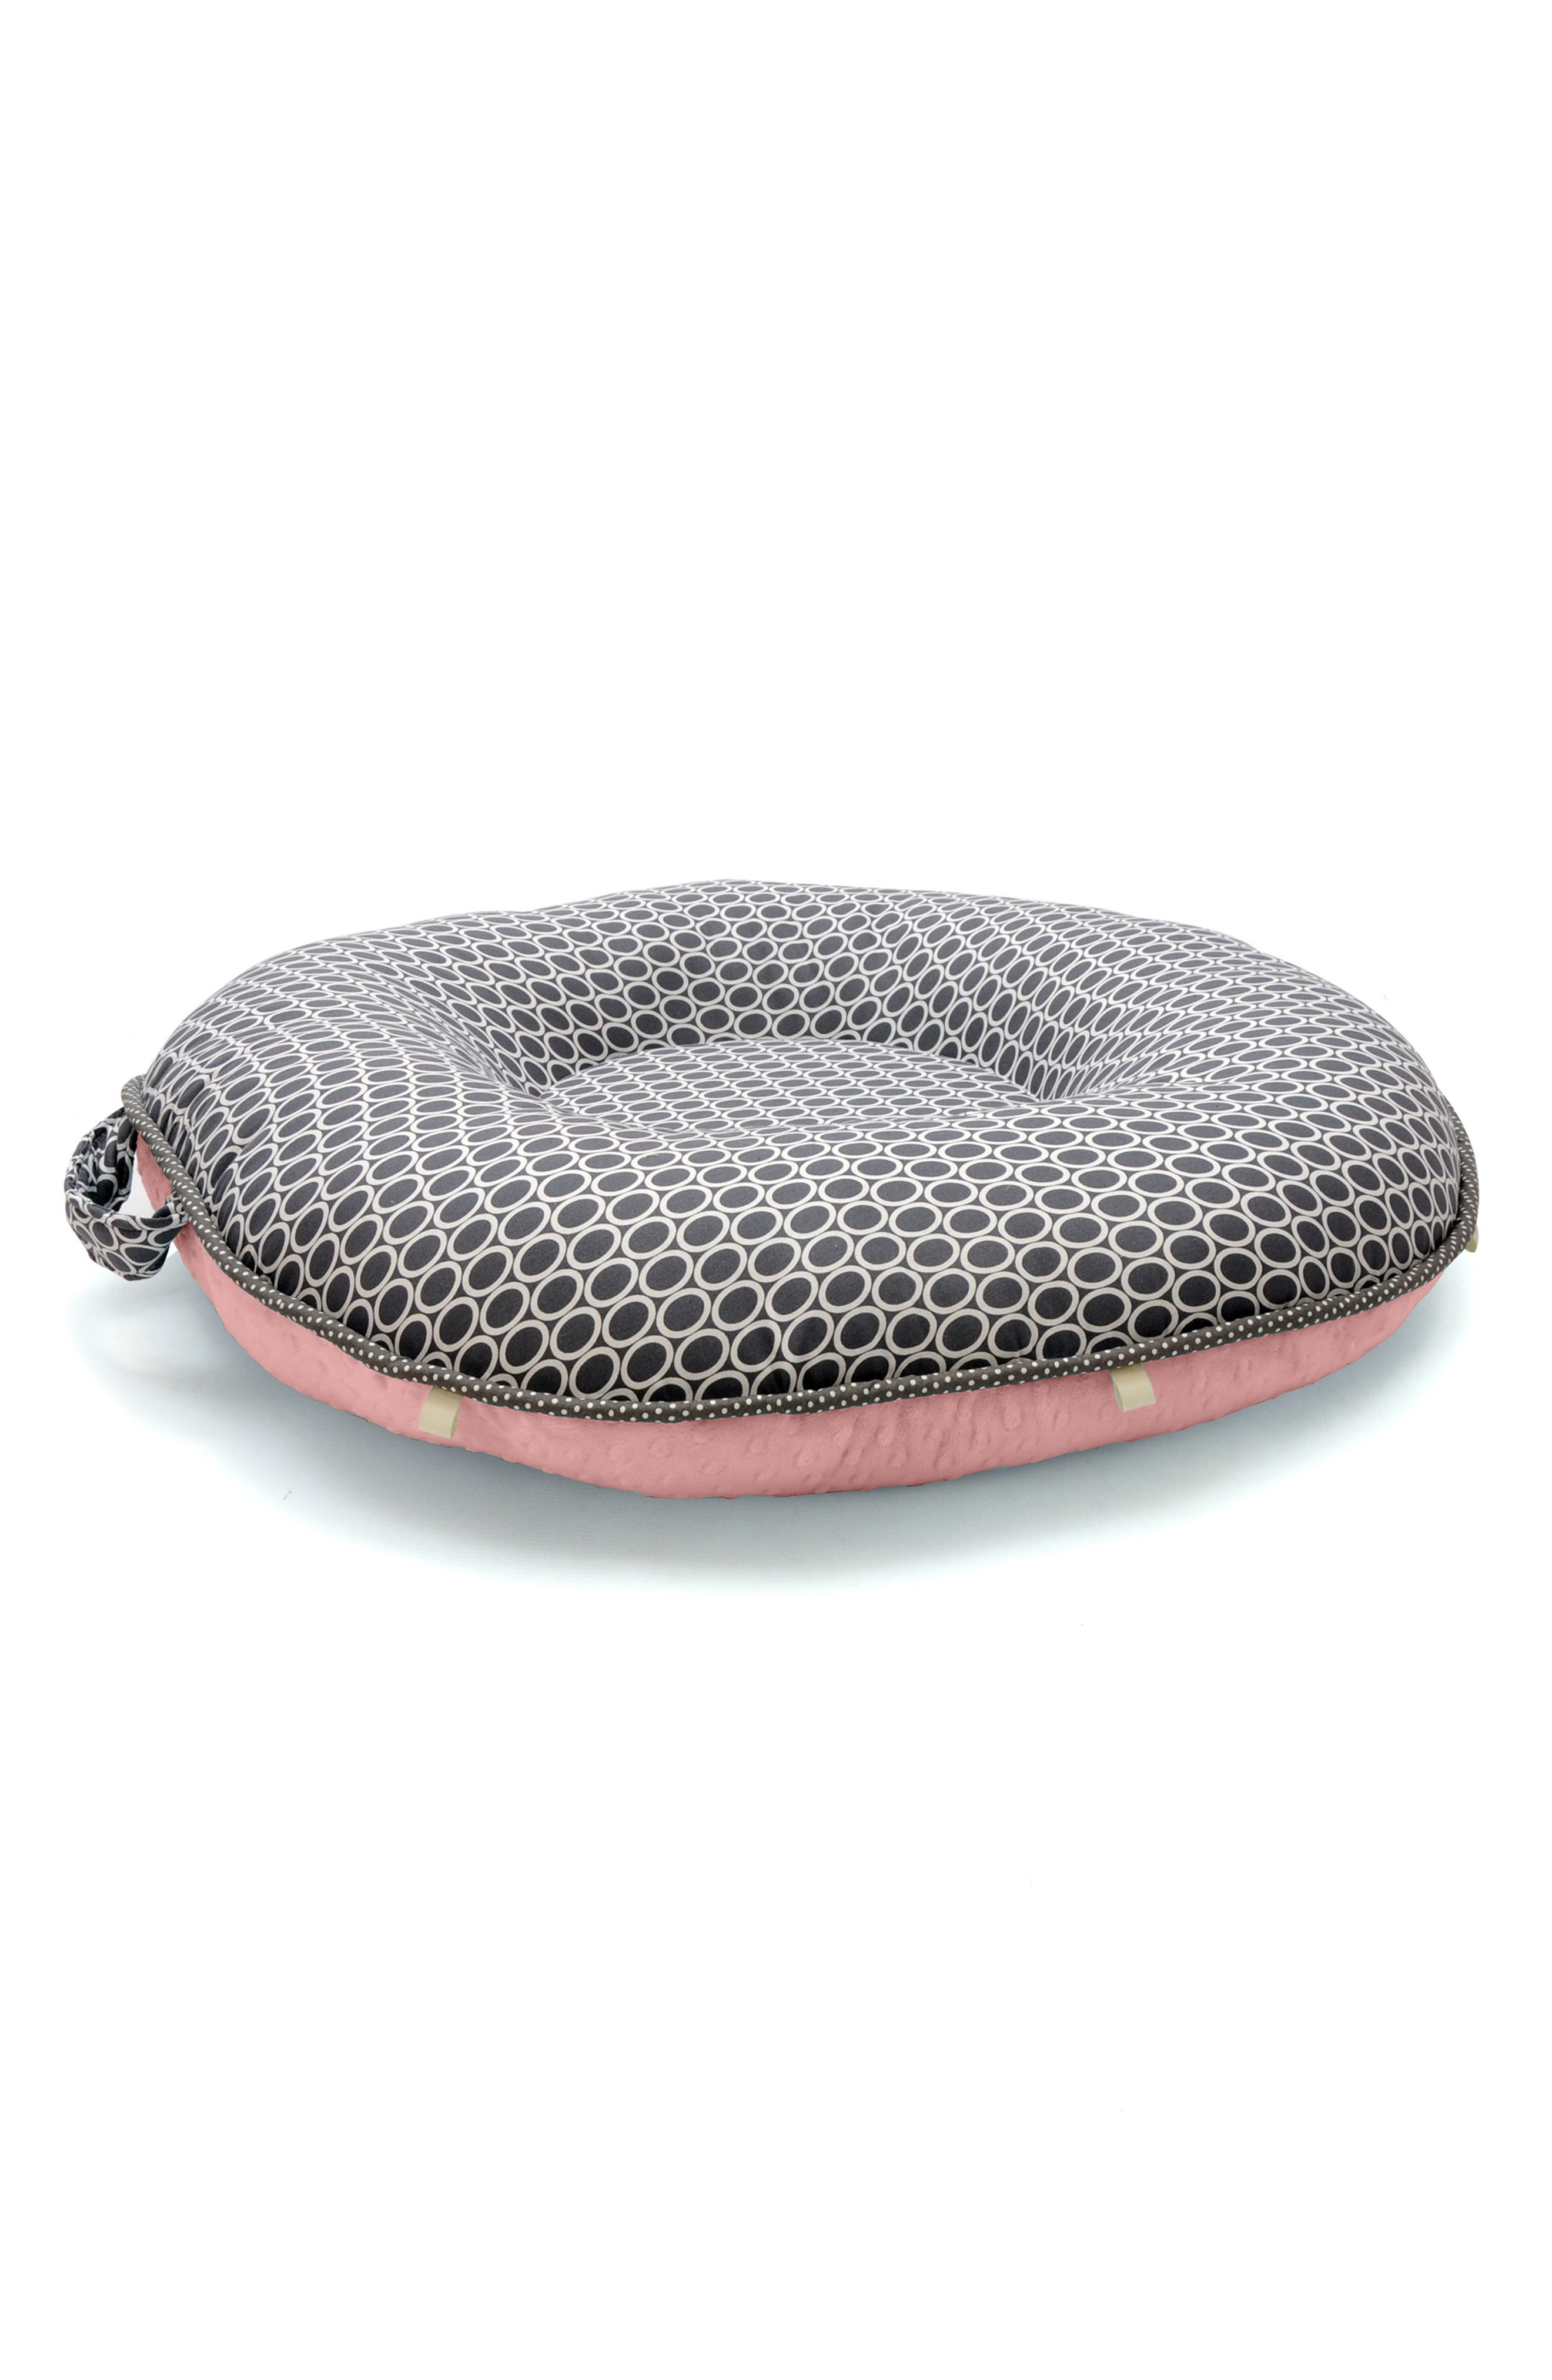 Alternate Image 1 Selected - Pello 'Majestic' Portable Floor Pillow (Baby)